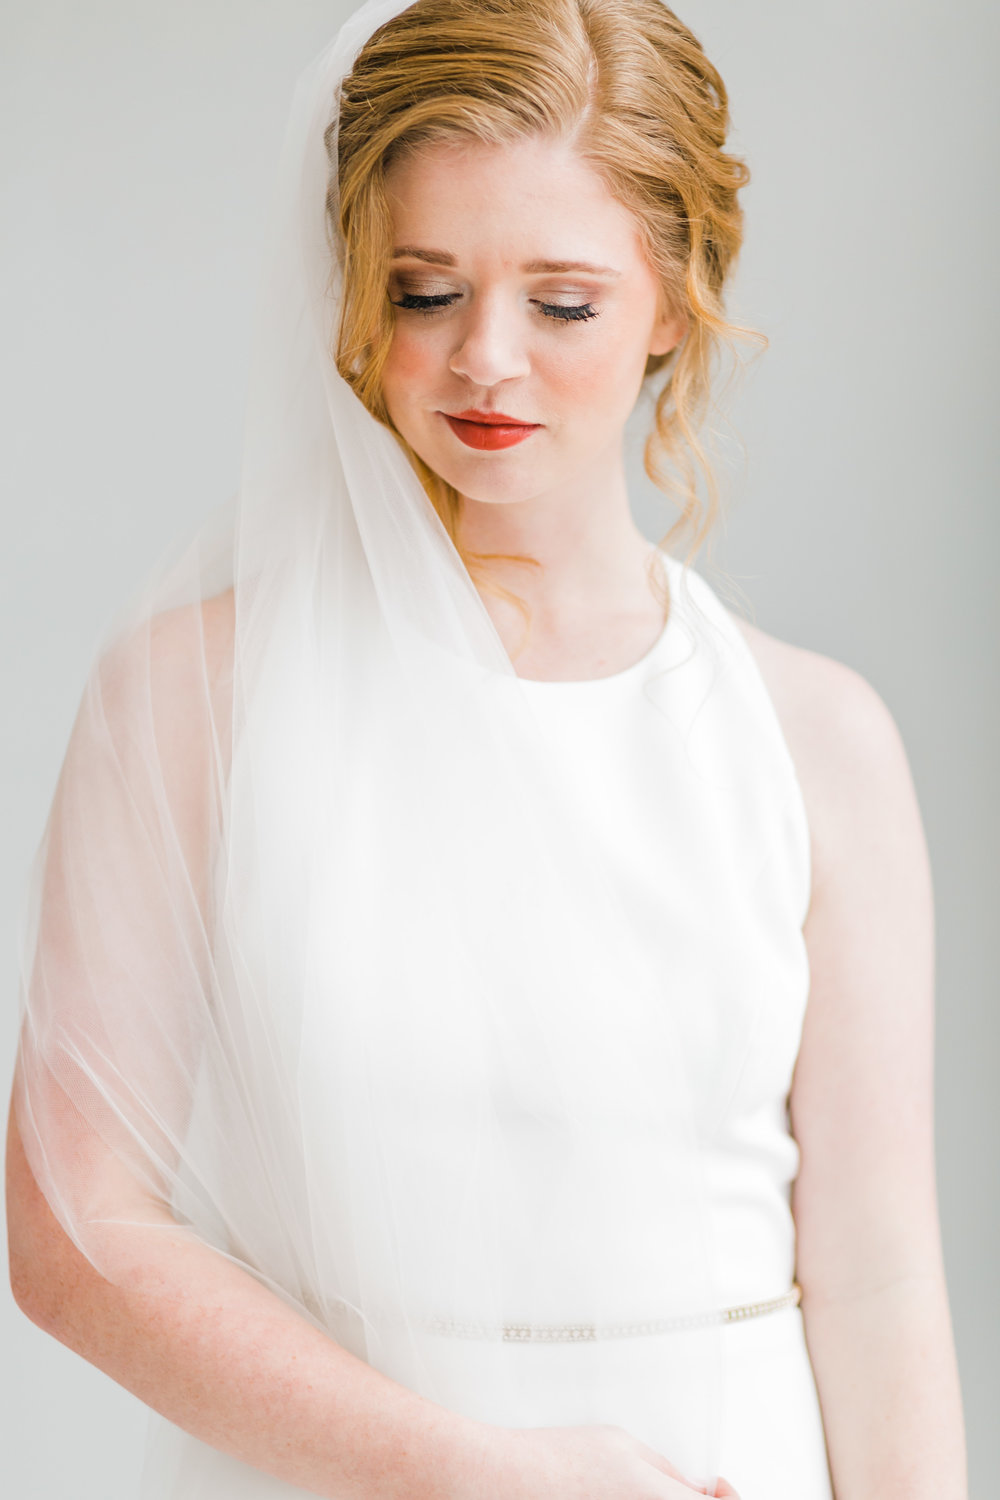 classic red head bride with unembellished dress pronovias and veil